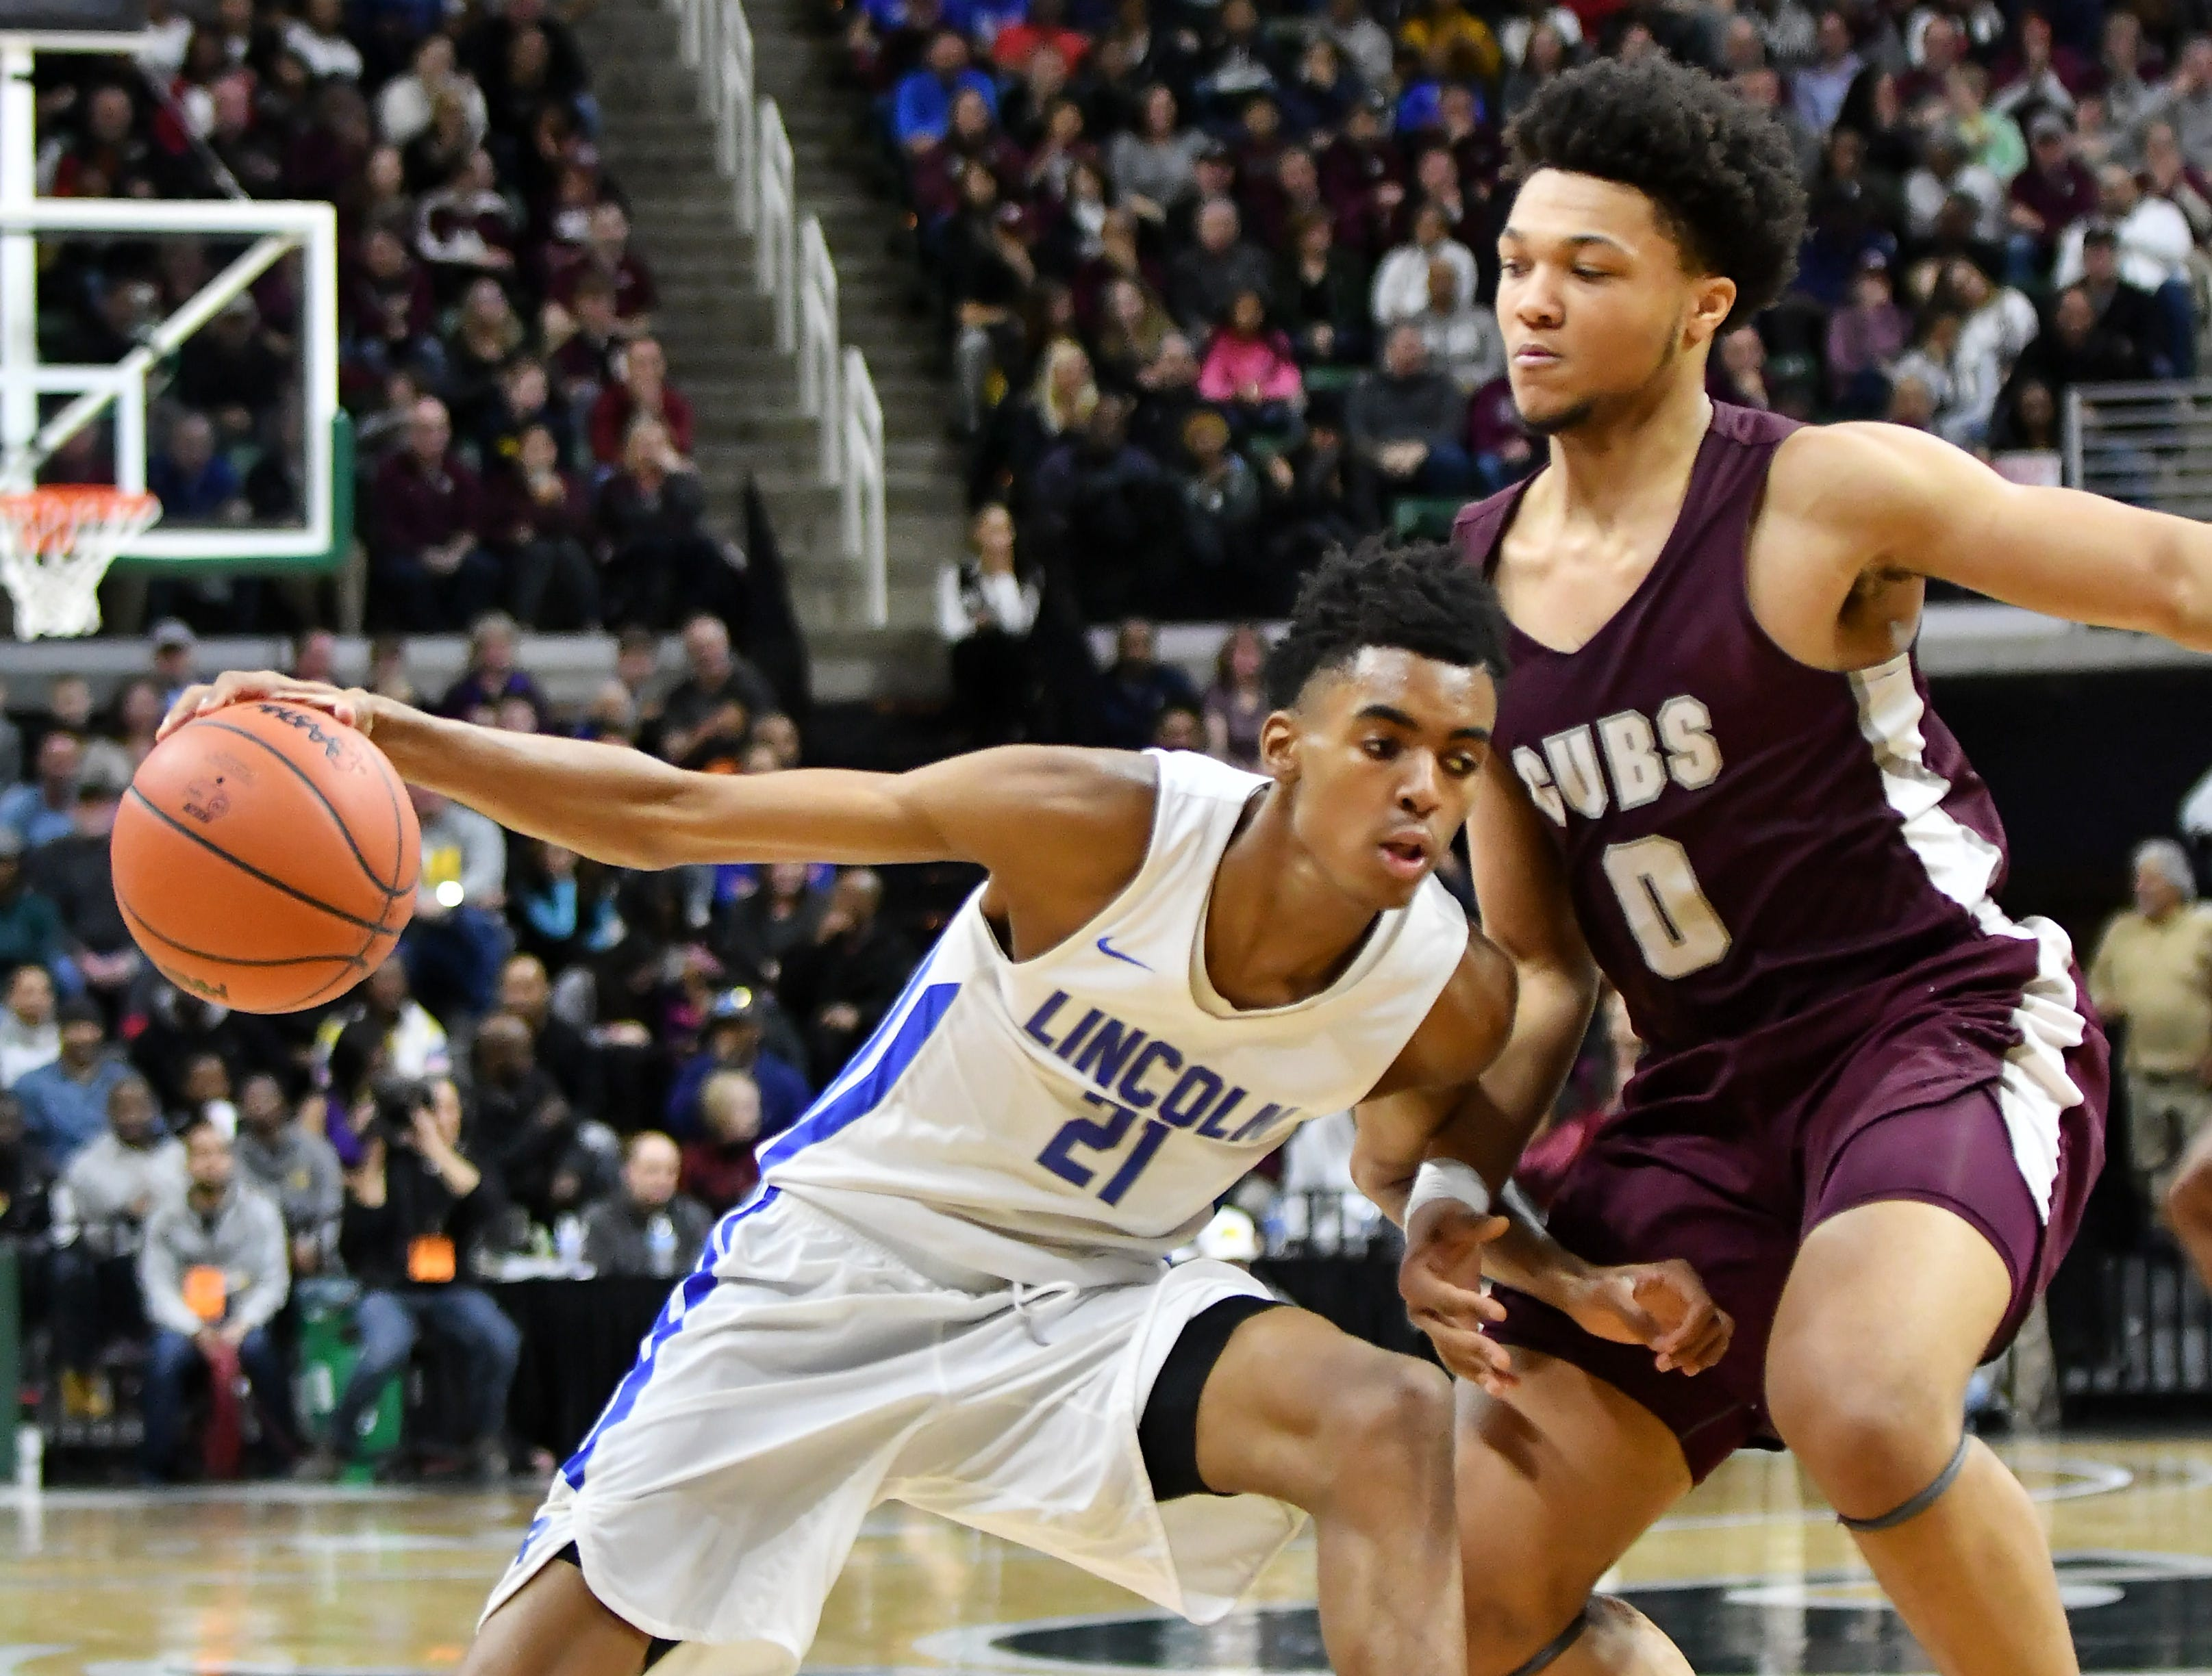 U-D Jesuit's Daniel Friday (0) guards Lincoln's Emoni Bates (21) in the second half.